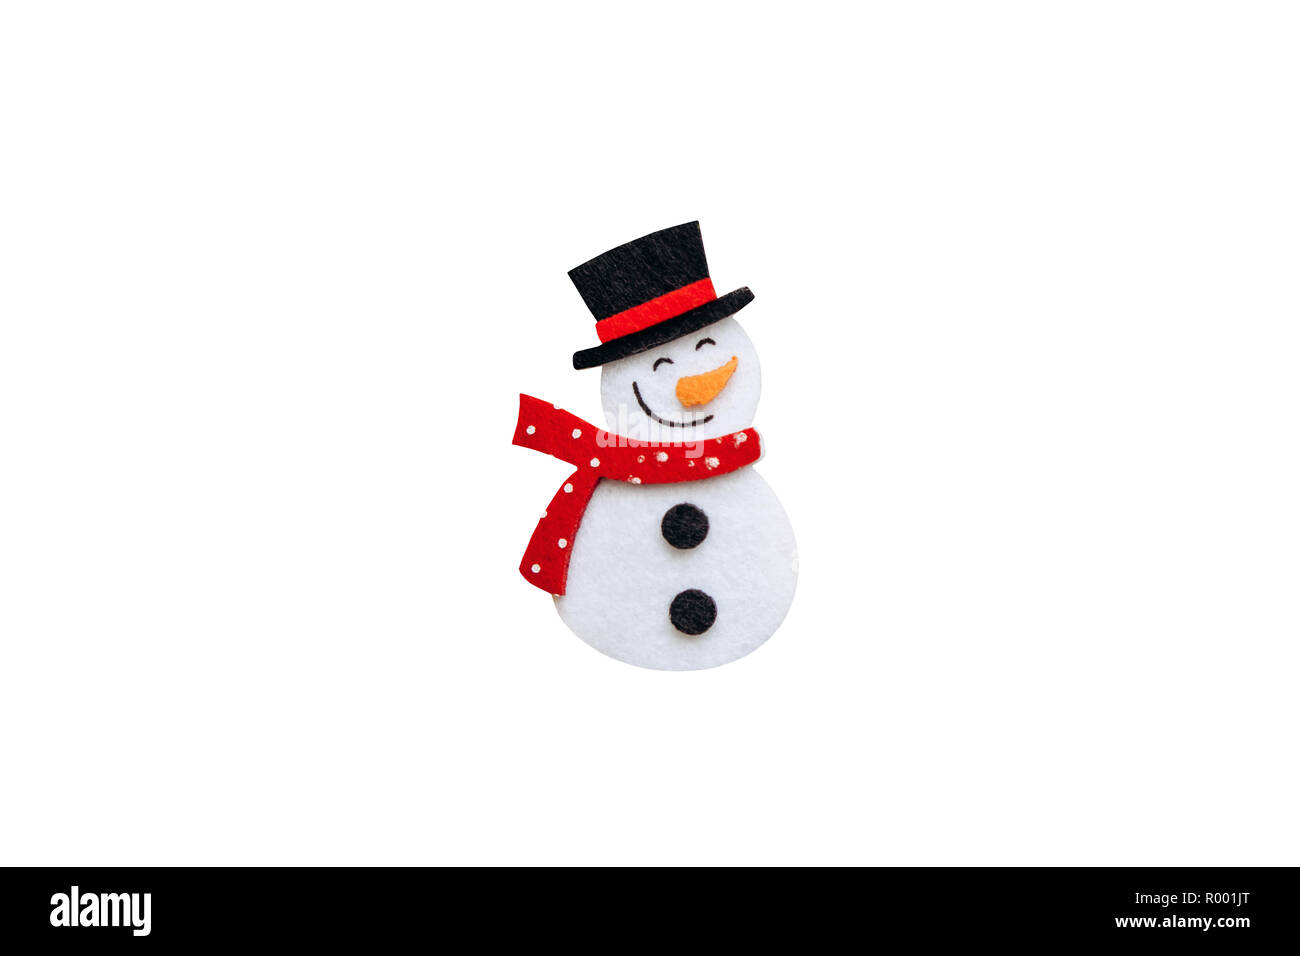 Christmas toy or snowman decoration detail in black hat and red scarf isolated on white background. Stock Photo